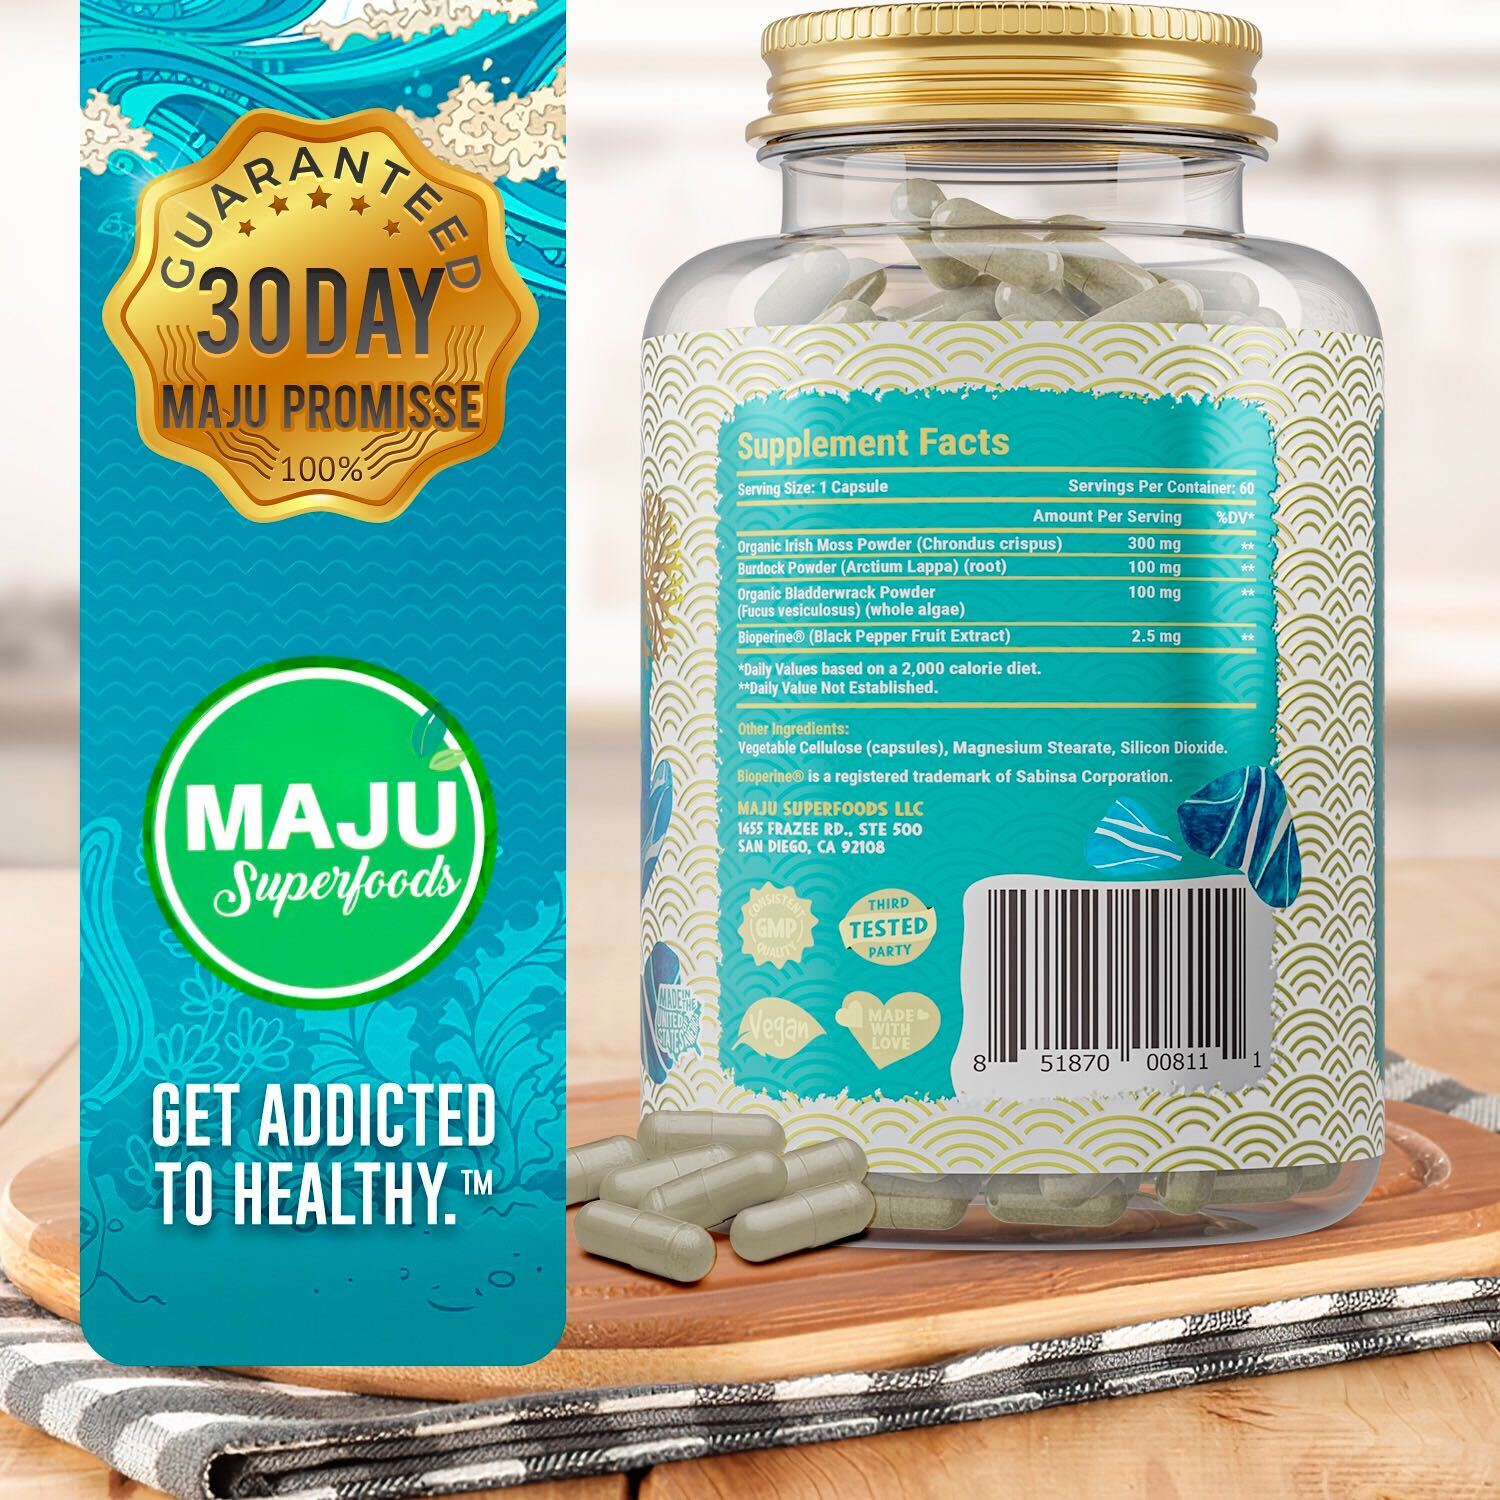 MAJU Sea Moss Capsules - Maju Superfoods